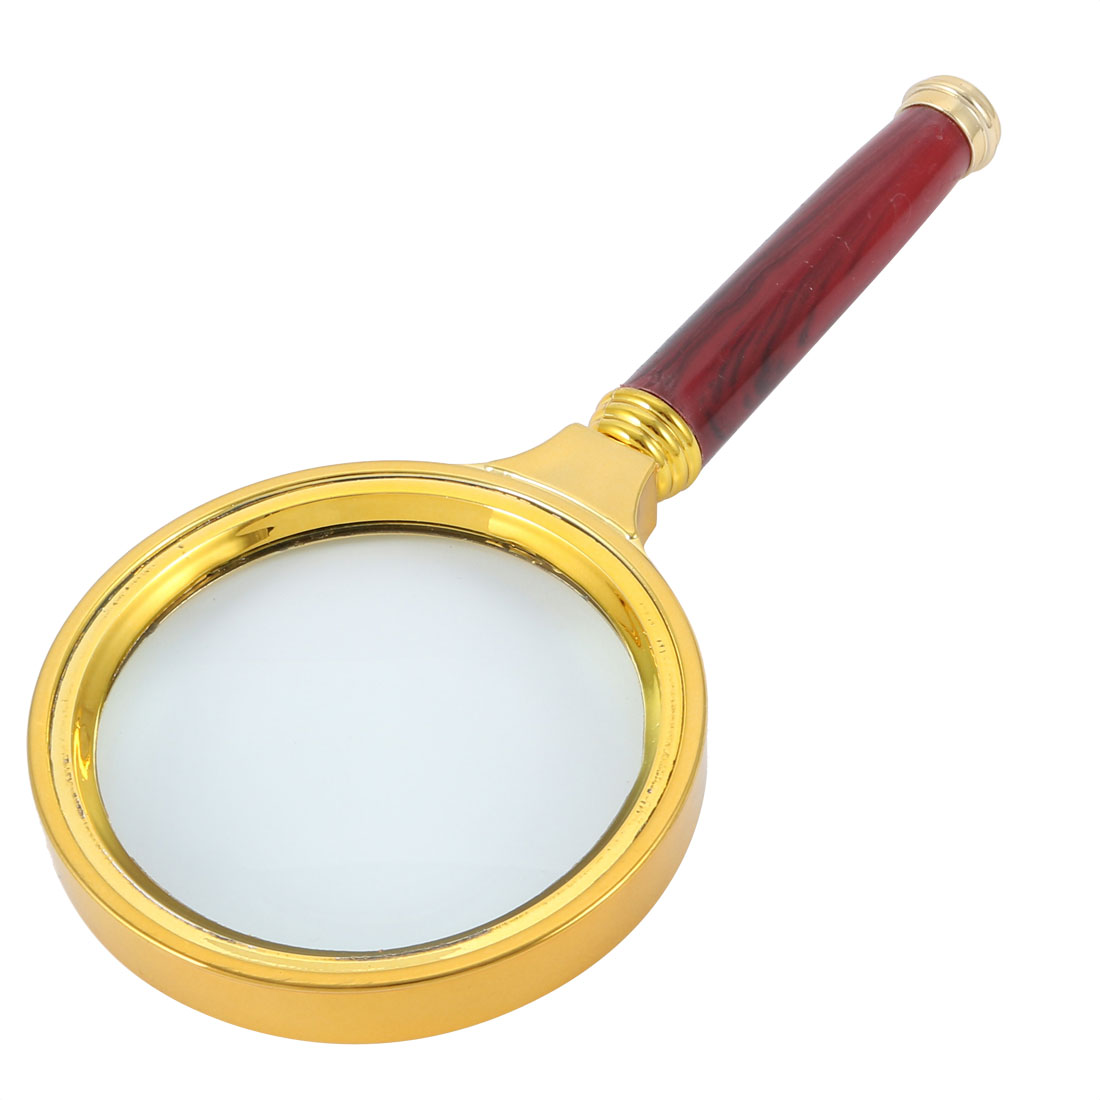 Handheld Magnifier Magnifying Glass Reading Glass Illuminated Magnifier 10X